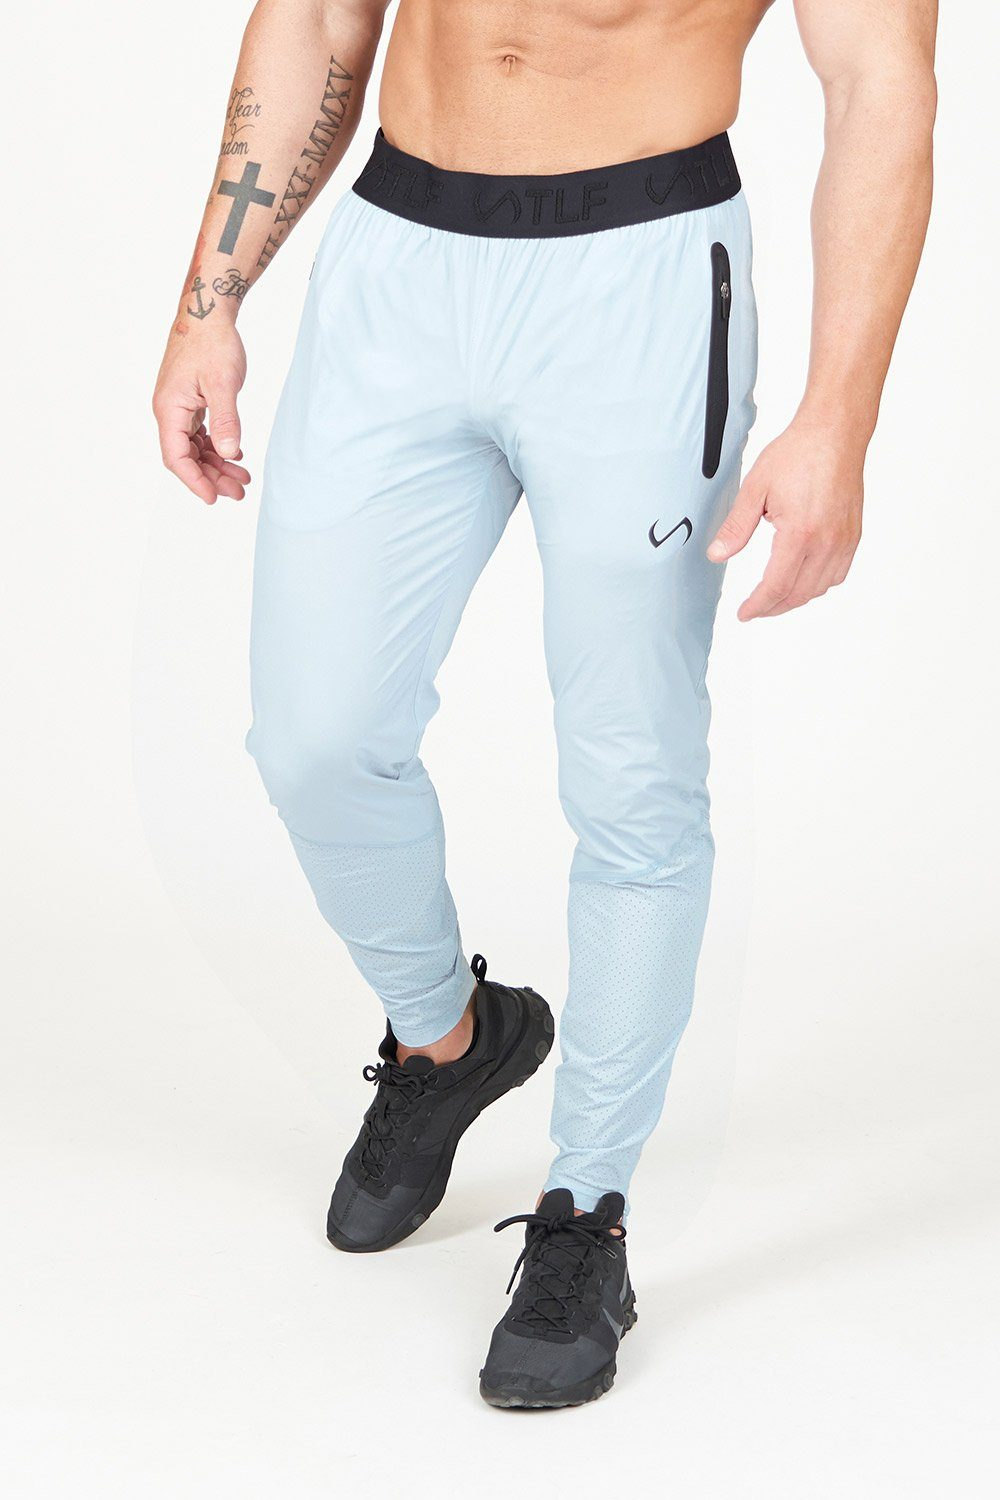 TLF Element Air-Flex Workout Joggers - TLF Apparel | Take Life Further